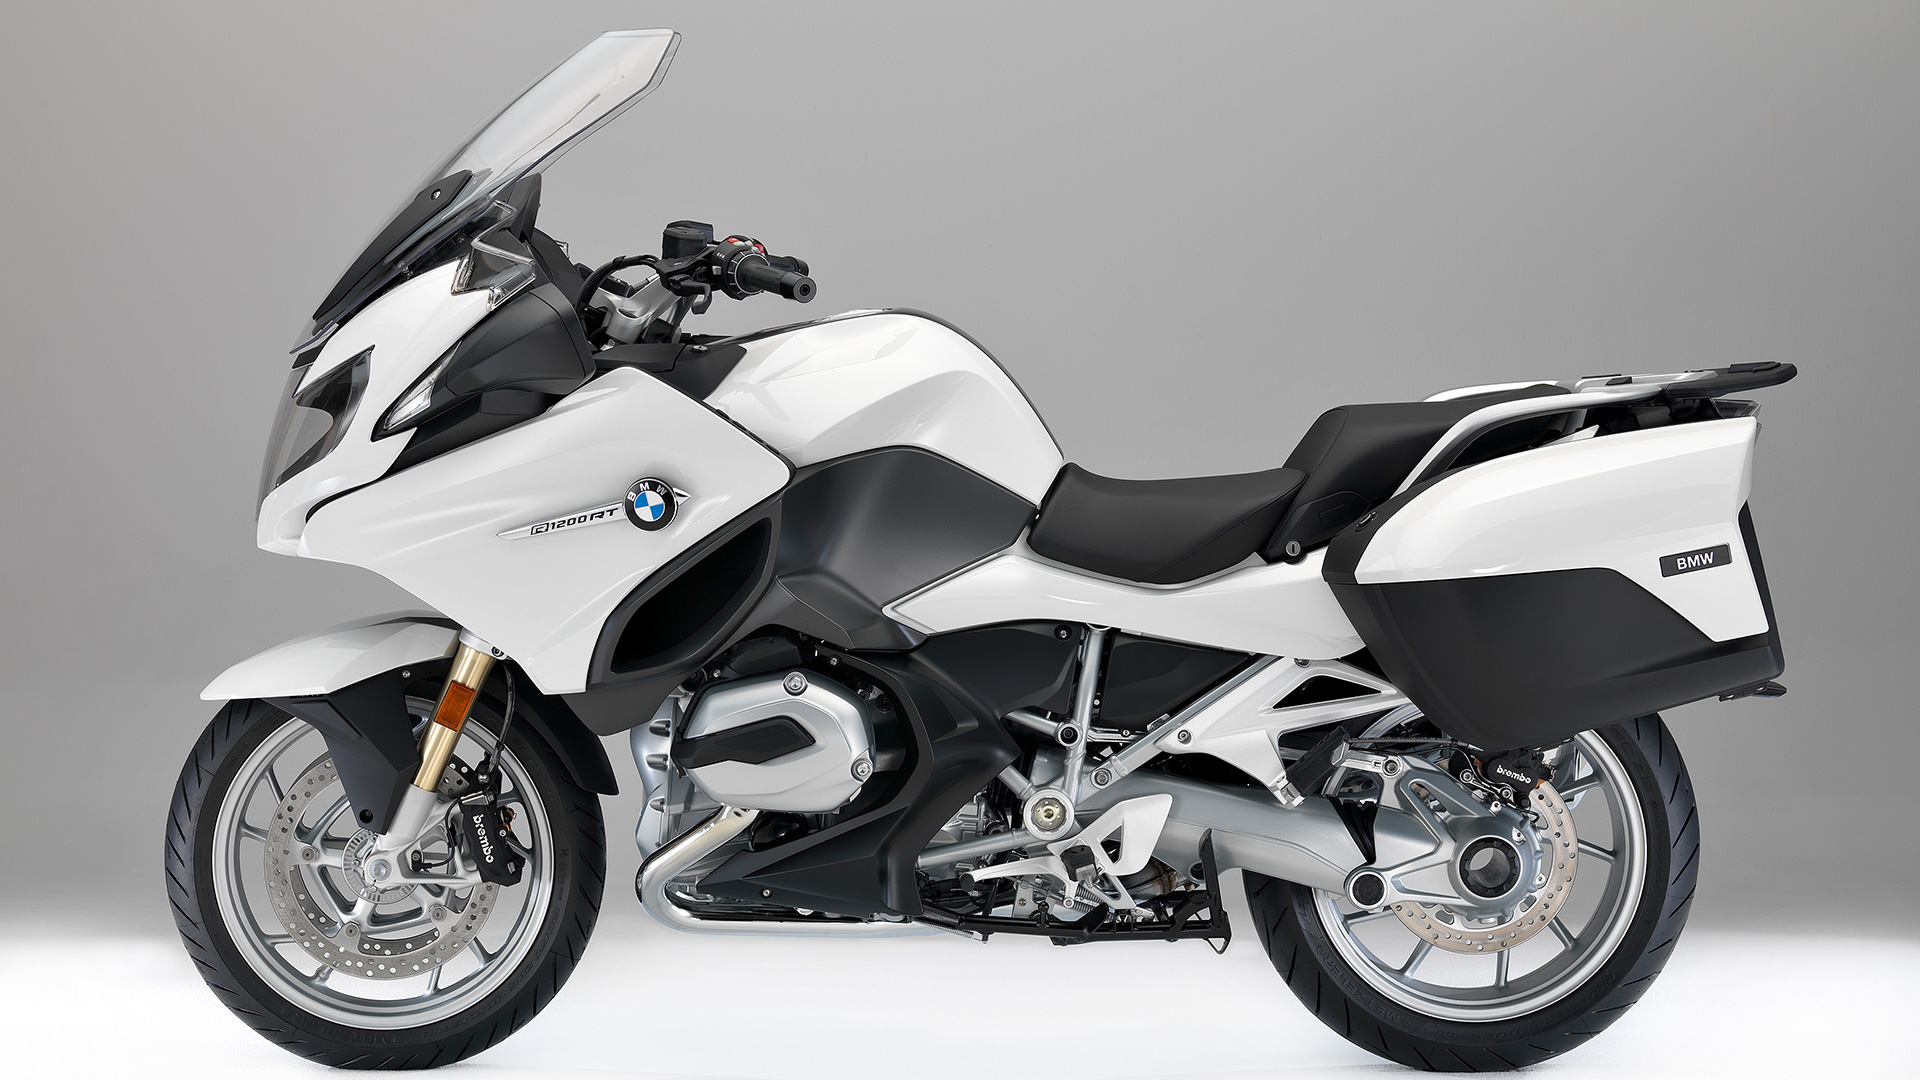 bmw r 1200 rt 2017 pro price mileage reviews specification gallery overdrive. Black Bedroom Furniture Sets. Home Design Ideas